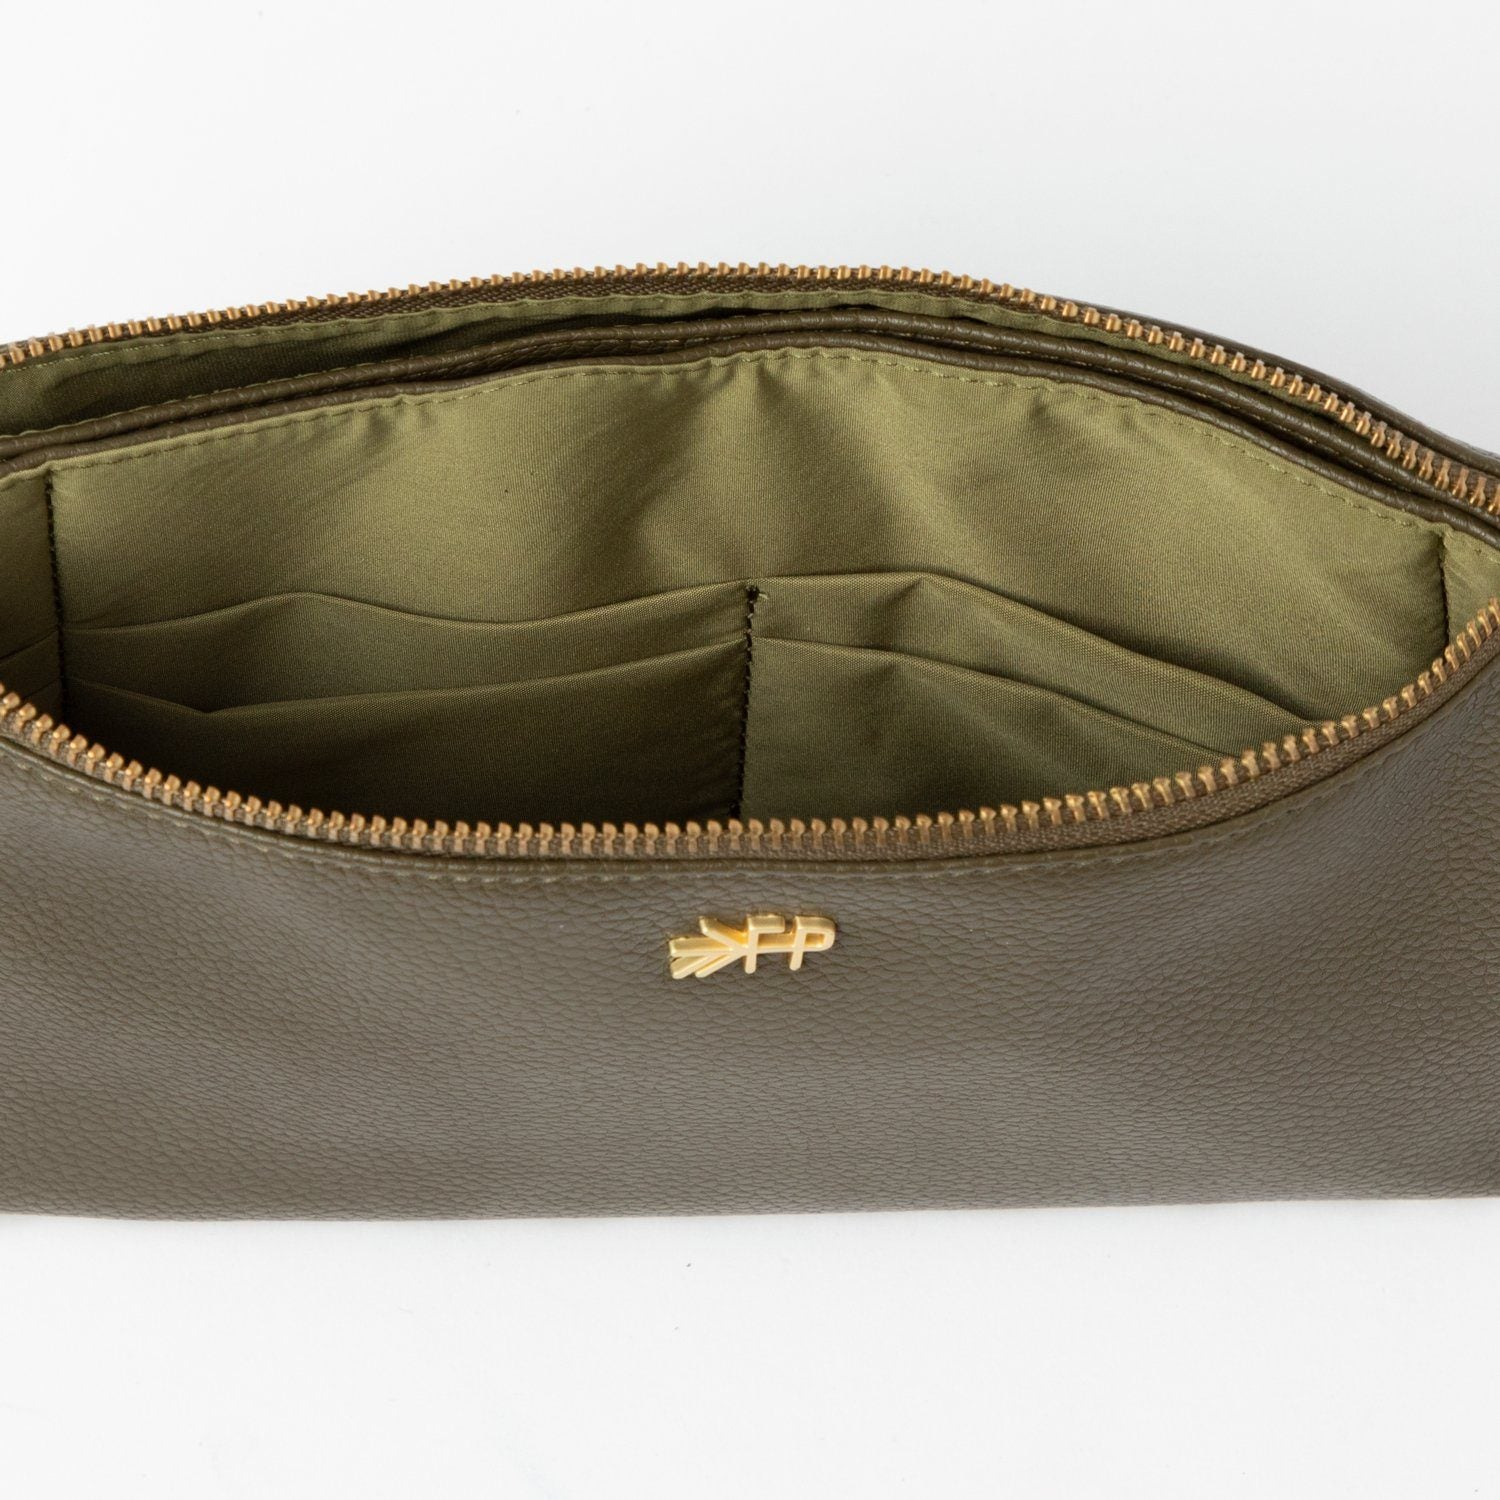 Olive Classic Zip Pouch Classic Zip Pouch Bags